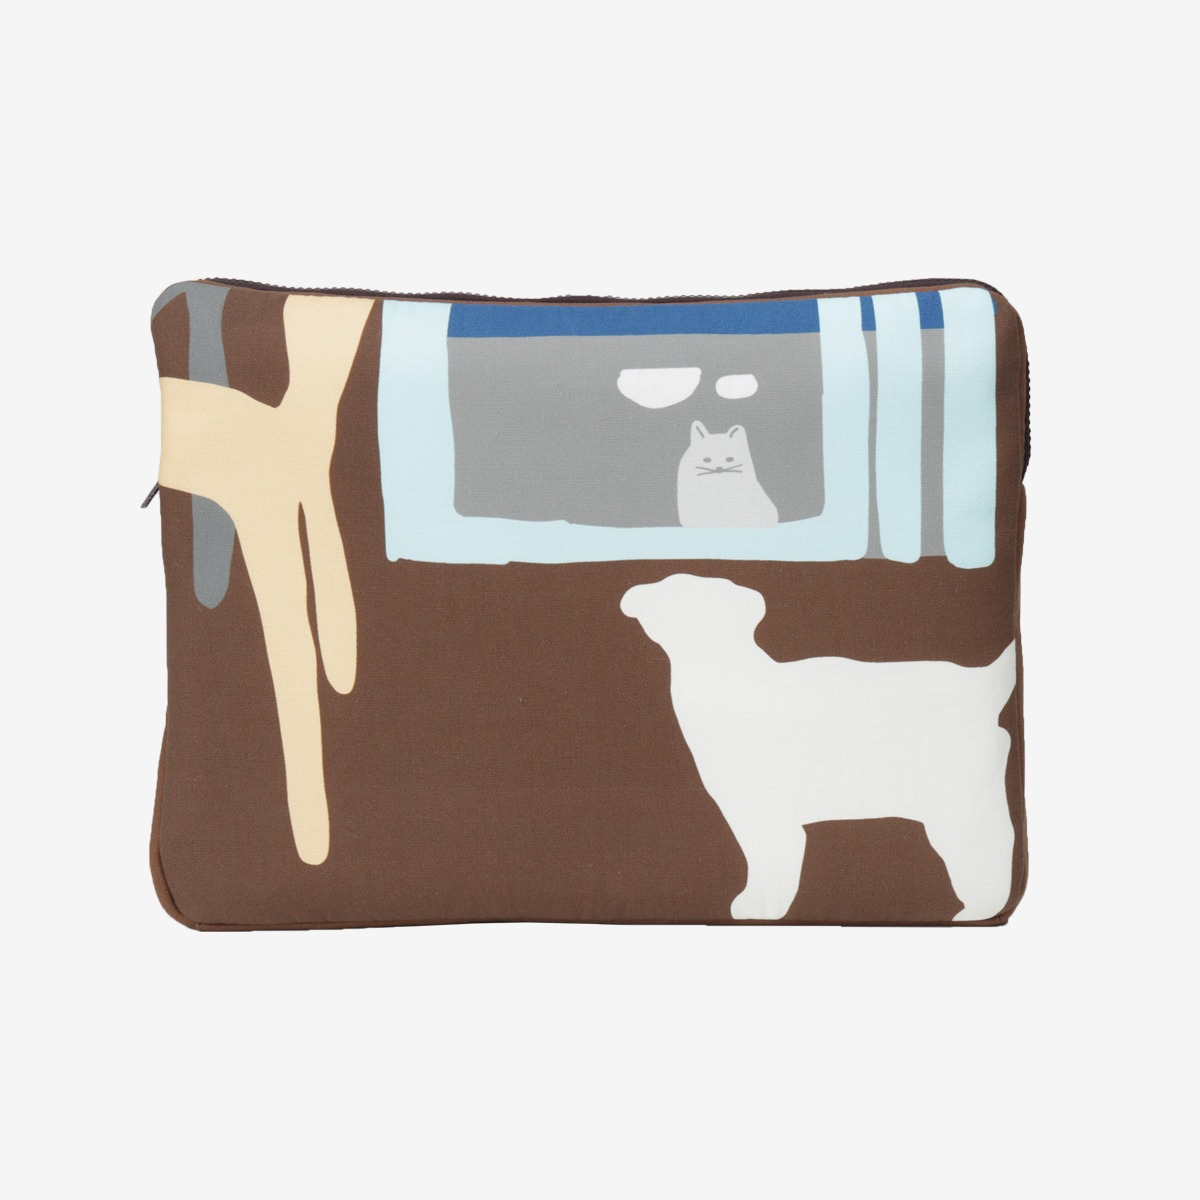 the window - brown laptop case